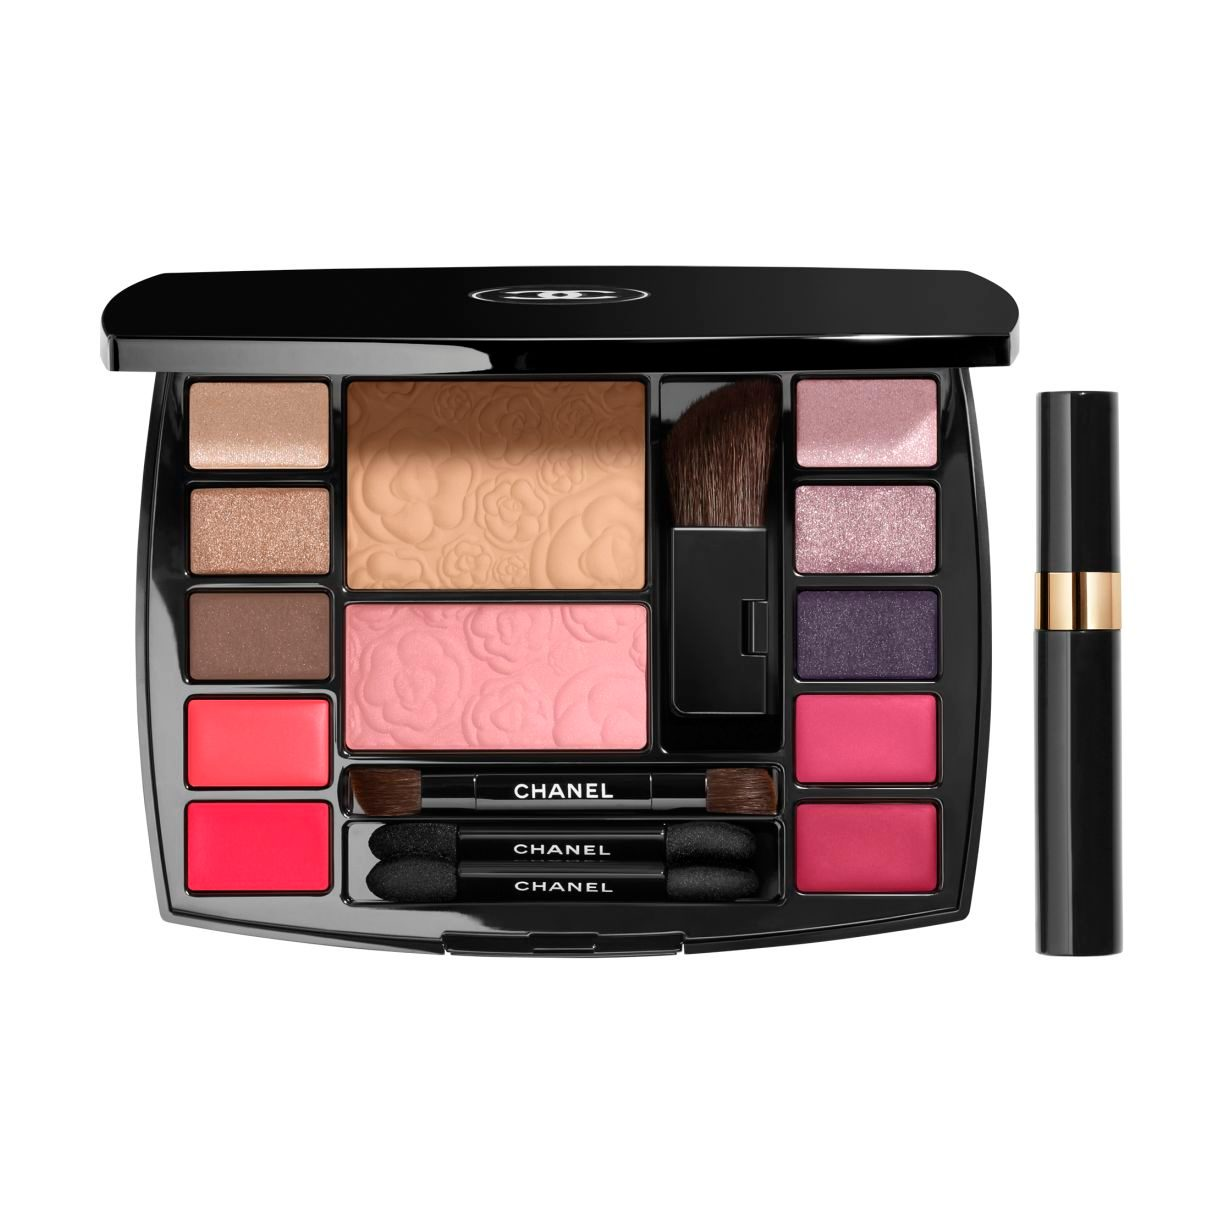 TRAVEL MAKEUP PALETTE PALETTE PER UN MAKE UP COMPLETO (COLORITO, OCCHI, LABBRA) E MINI MASCARA  Harmonie de Camélias 17g